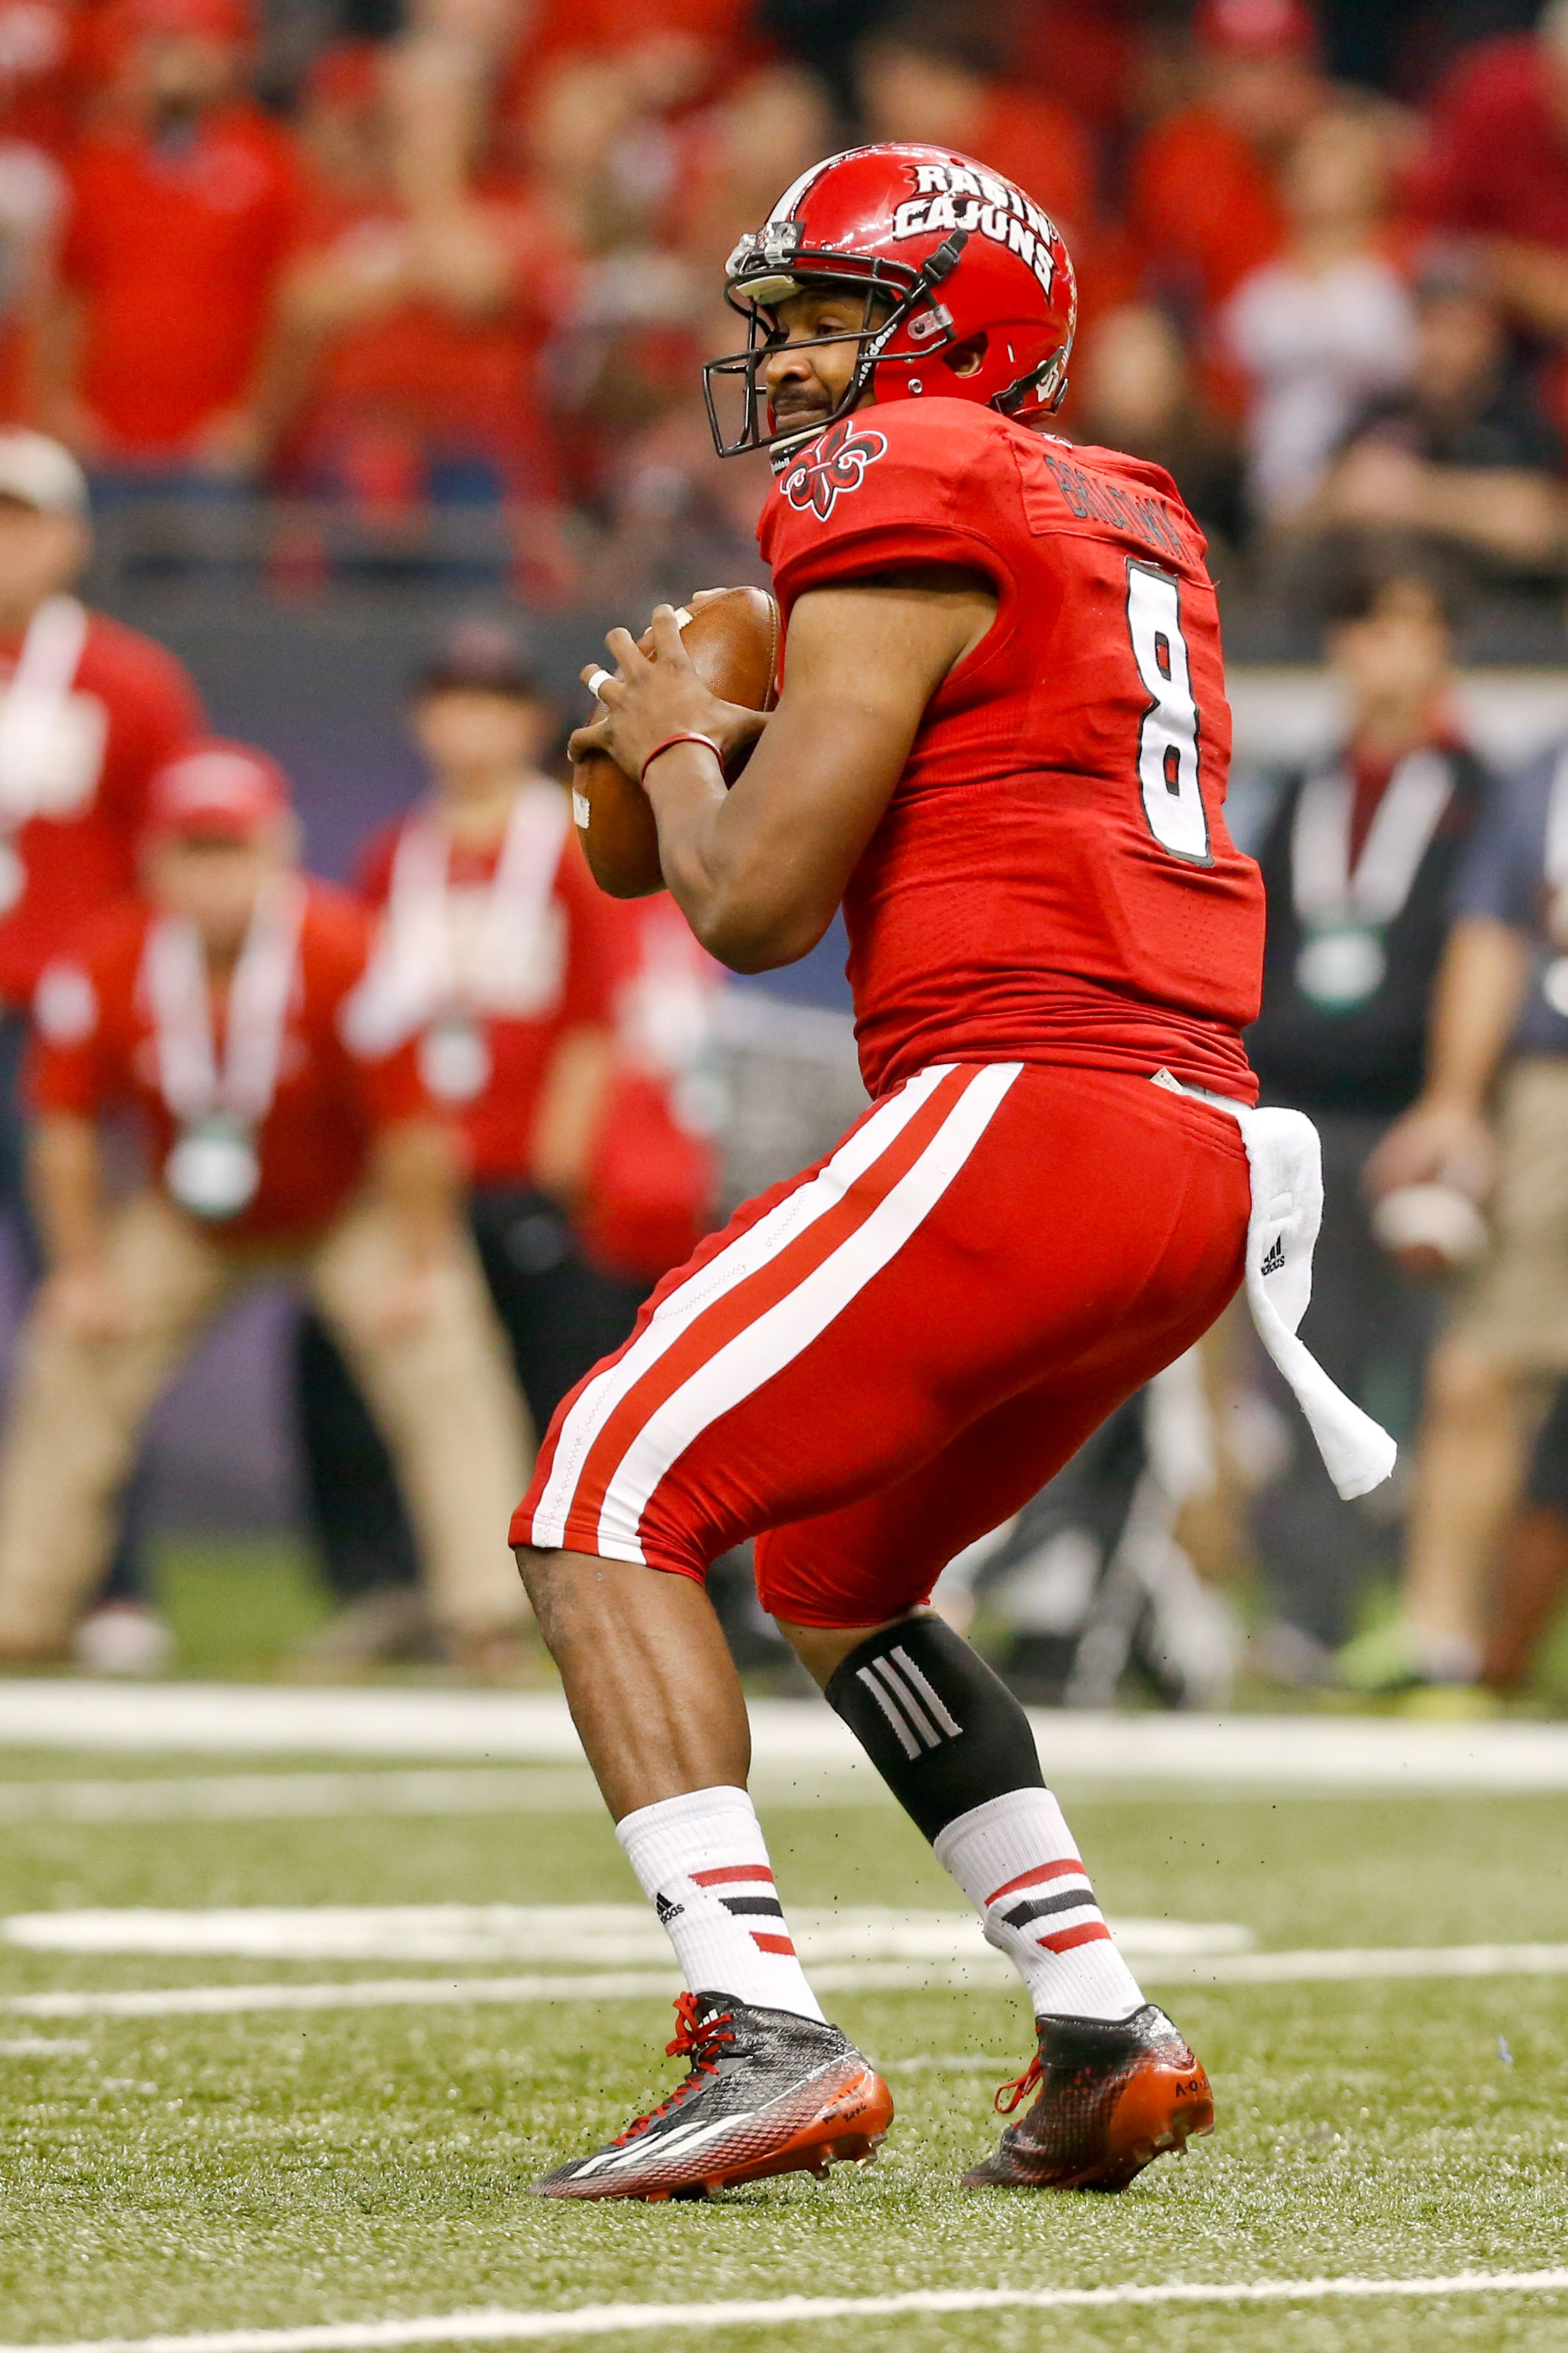 Dec 20, 2014; New Orleans, LA, USA; Louisiana-Lafayette Ragin Cajuns quarterback Terrance Broadway (8) against the Nevada Wolf Pack during the second quarter of the New Orleans Bowl at the Mercedes-Benz Superdome. (Derick E. Hingle-USA TODAY Sports)